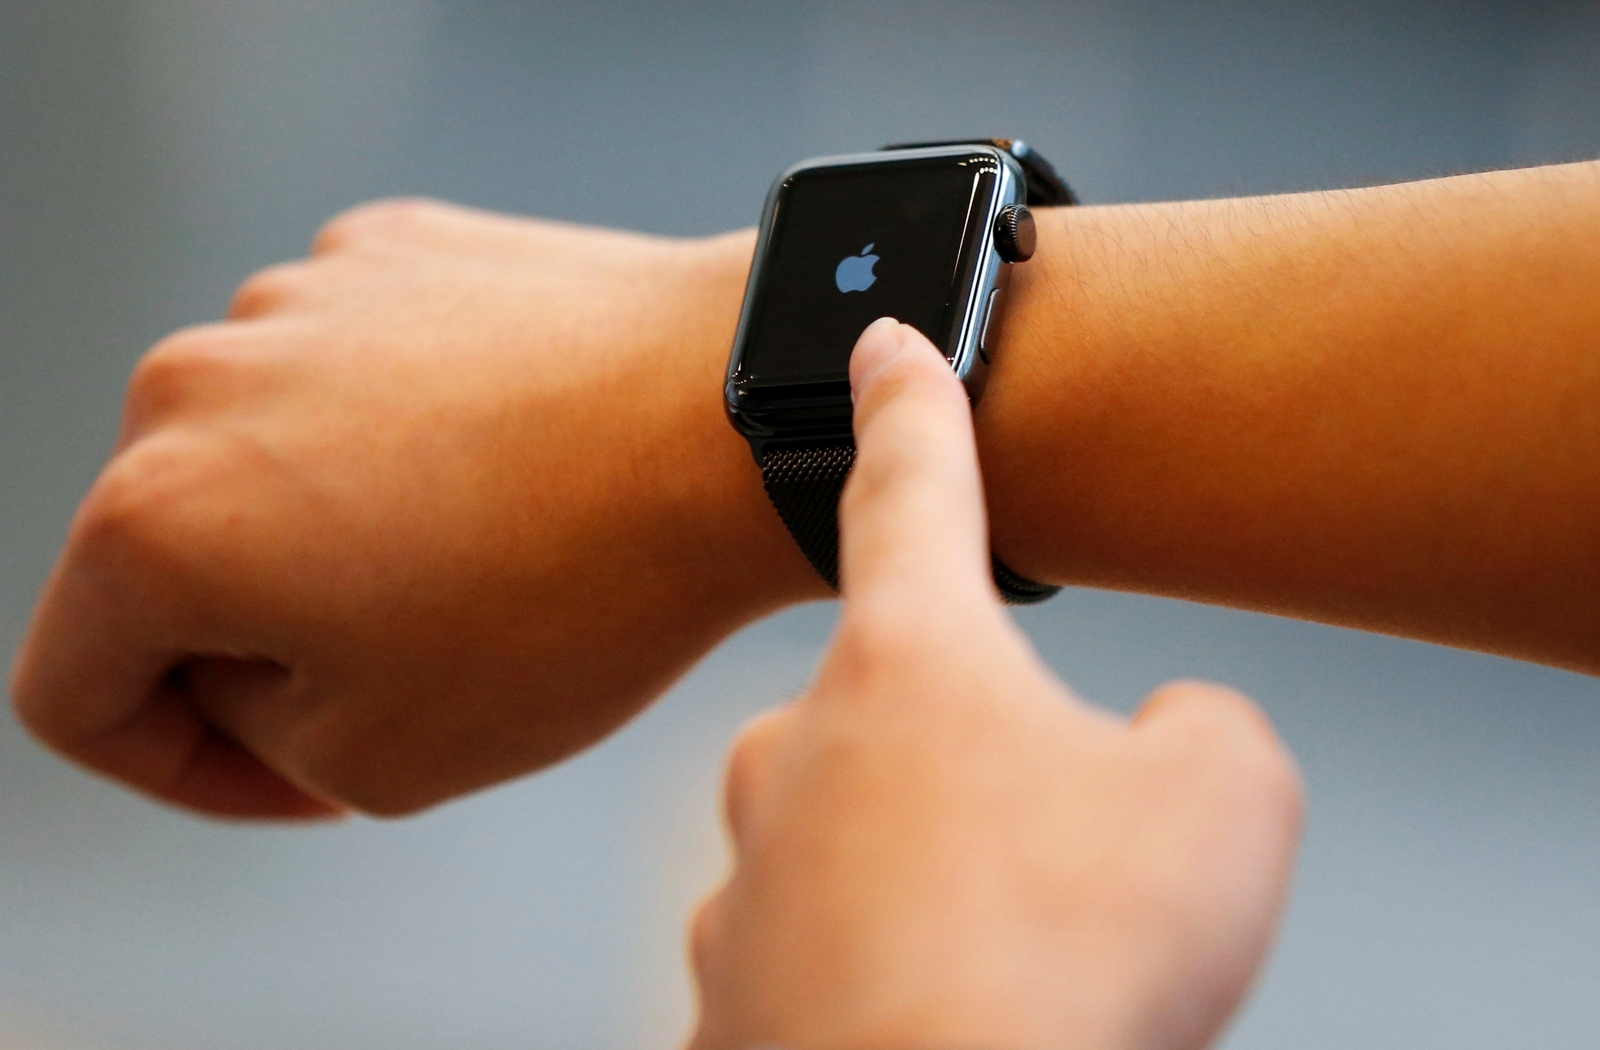 Apple Watch smartwatch sales figures